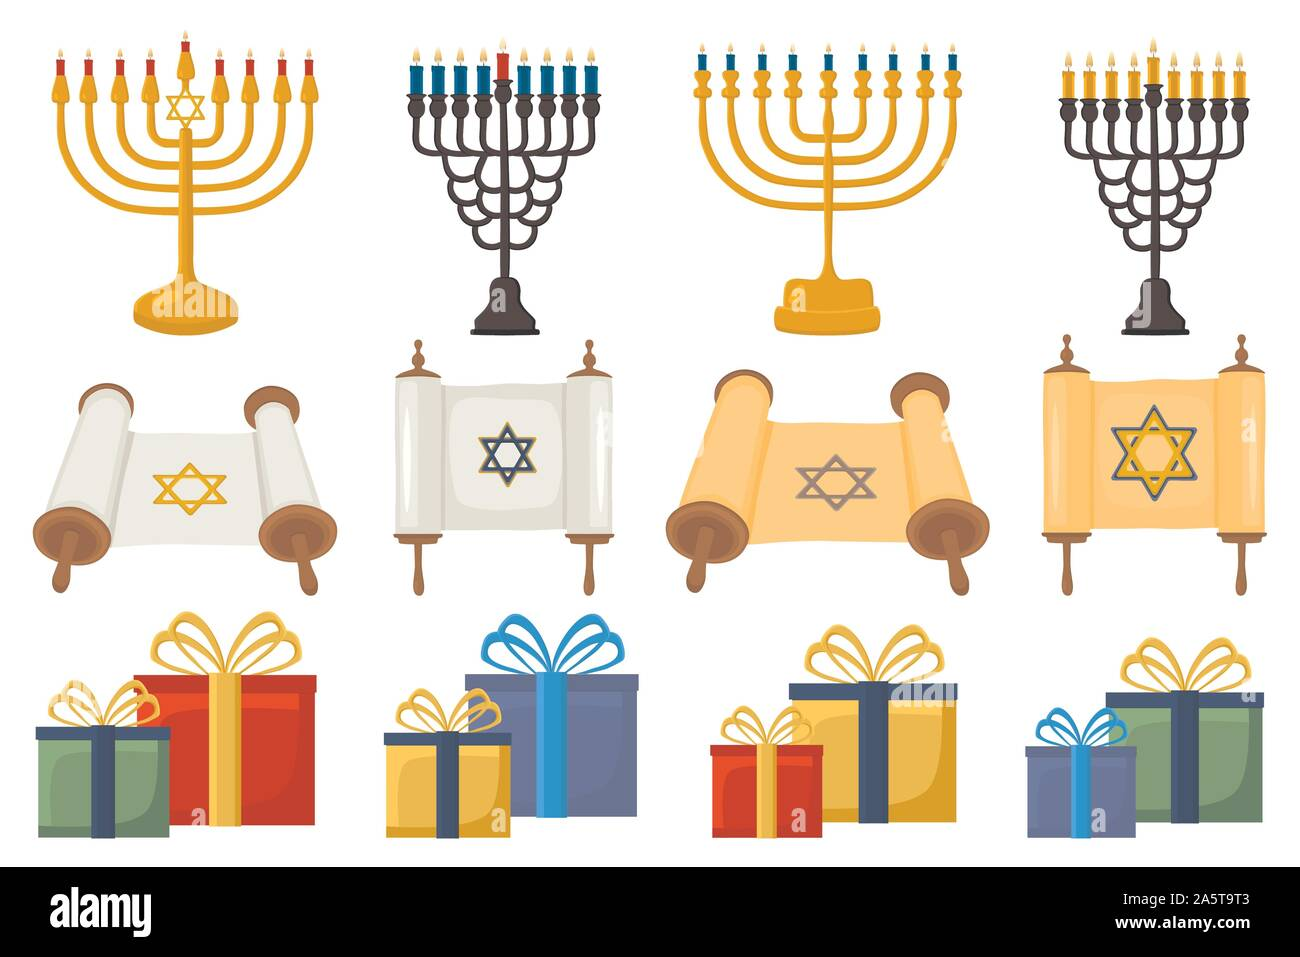 Menorah Dreidel Gelt High Resolution Stock Photography And Images Alamy